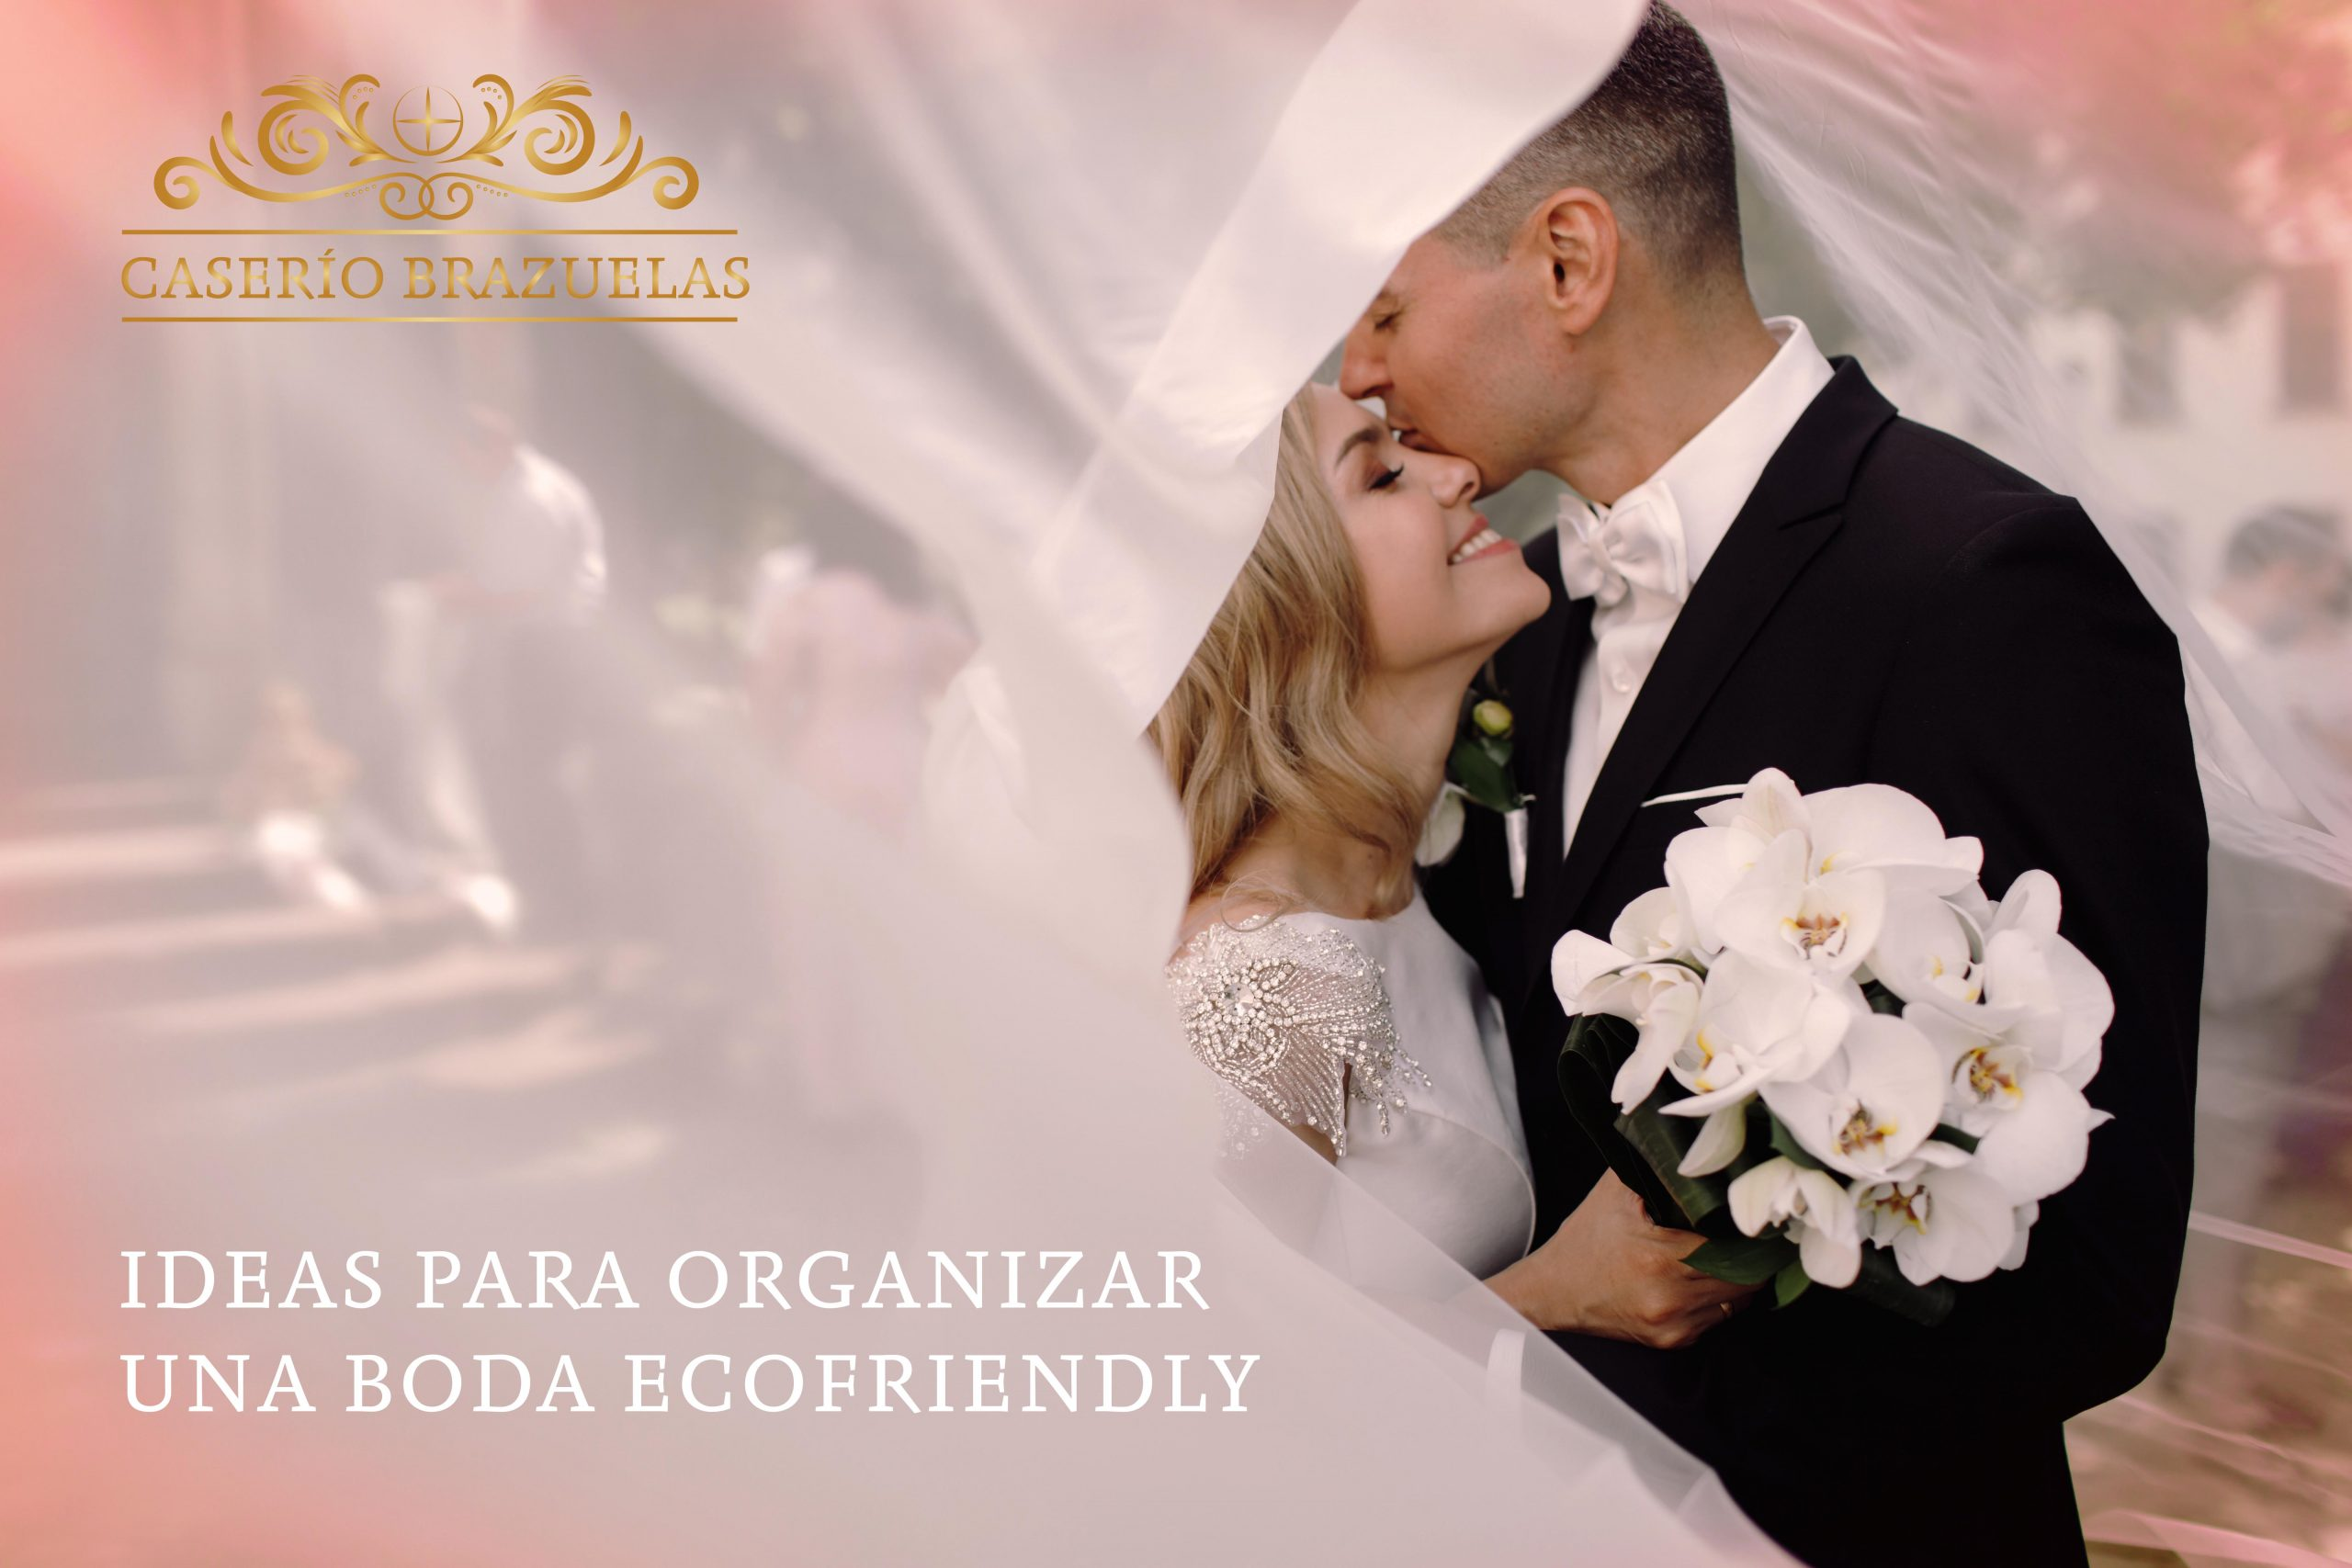 Bodas ecofriendly caserio brazuelas